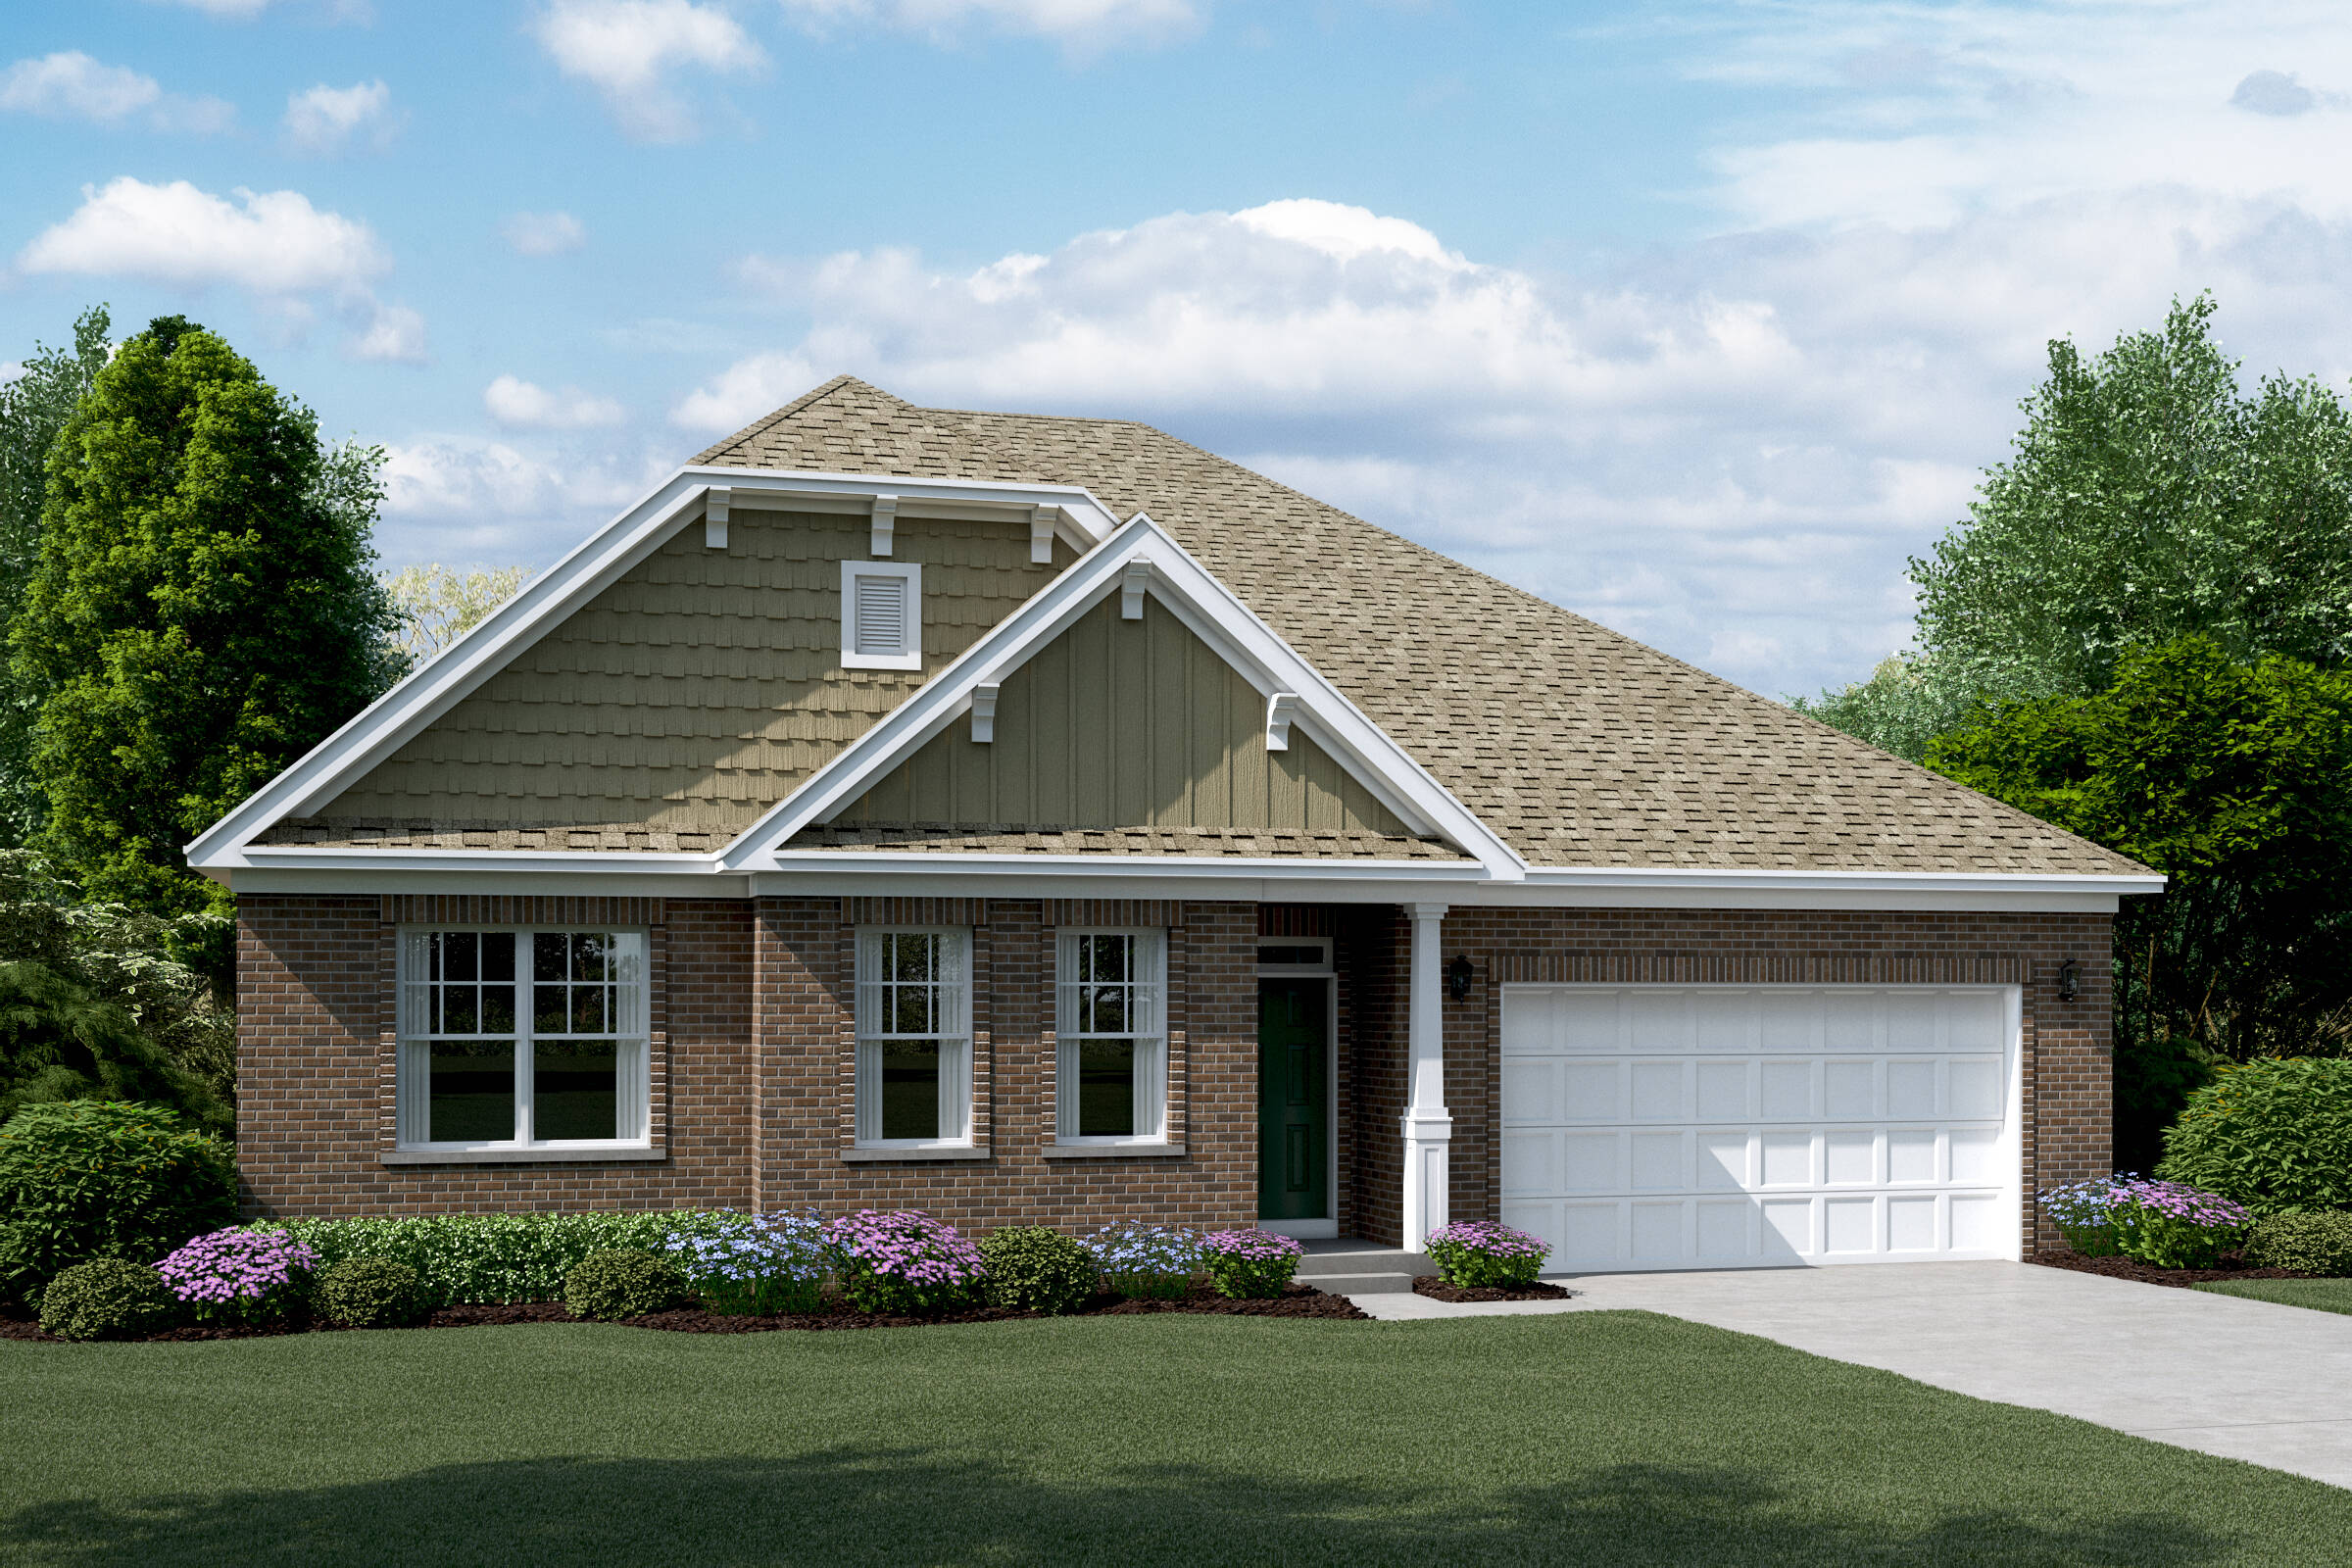 rosewood hb brand new homes manhattan illinois